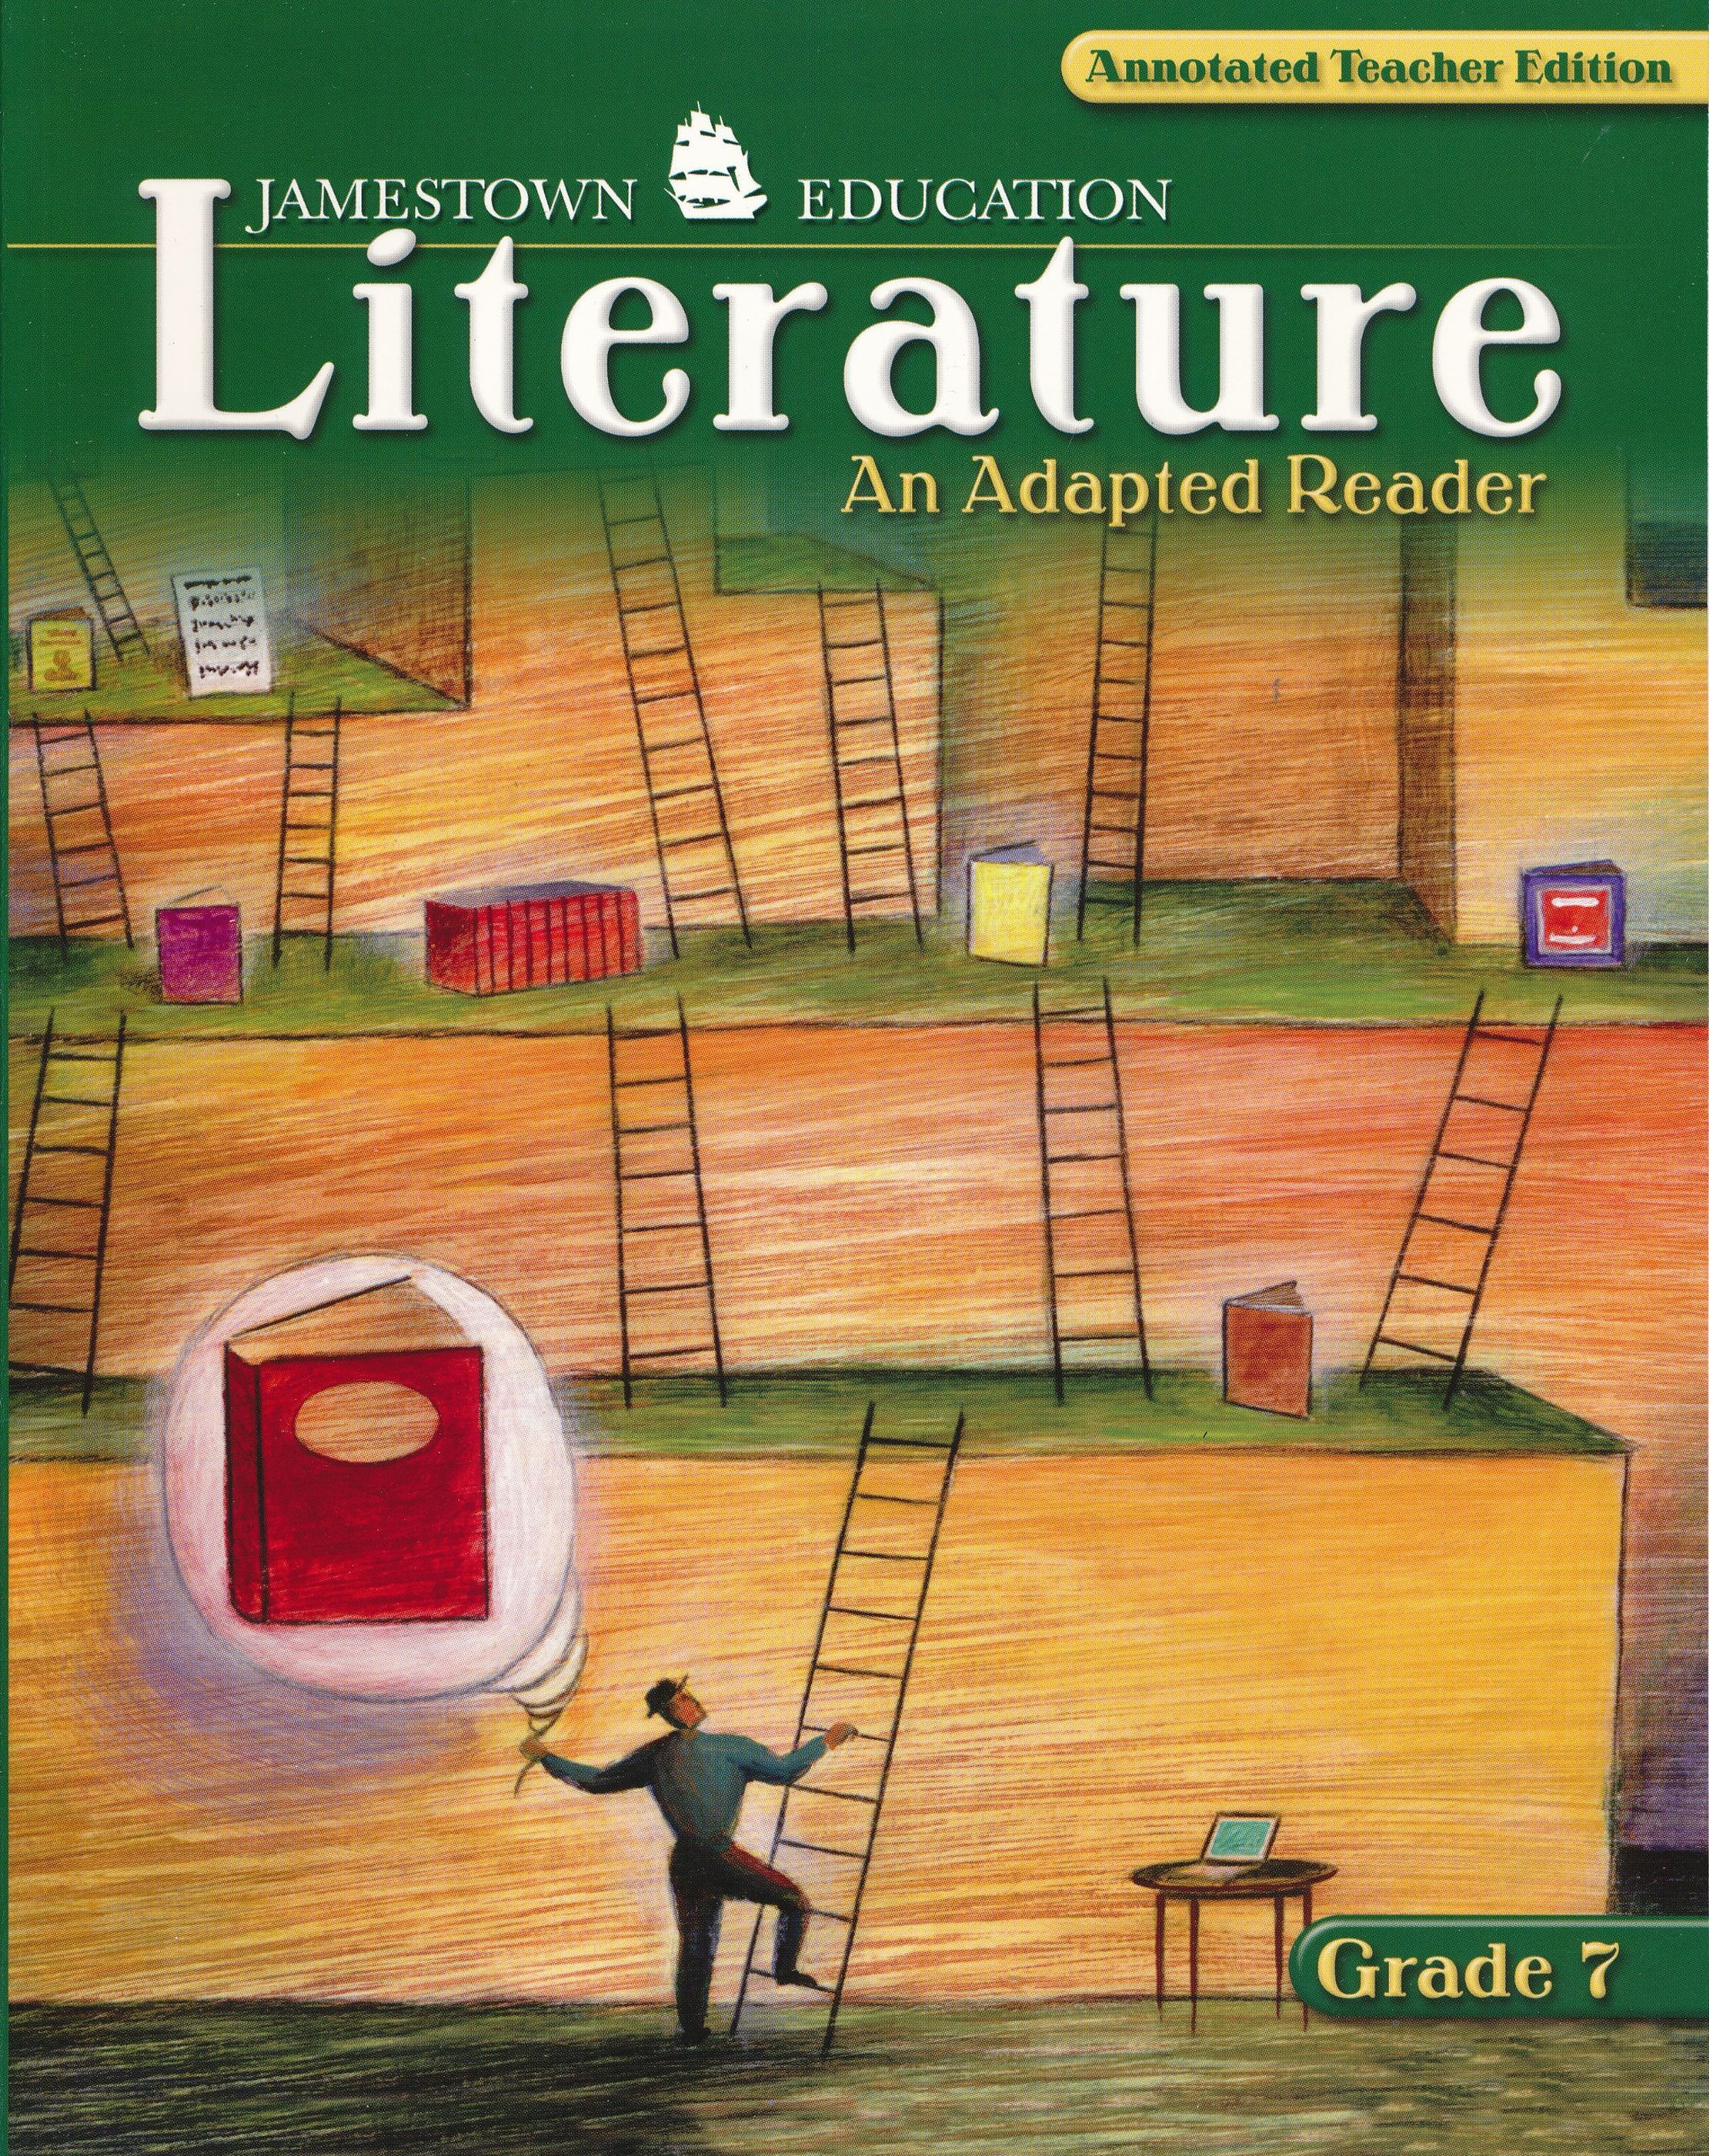 Glencoe JamesTown Literature An Adapted Reader Grade 7 Annotated